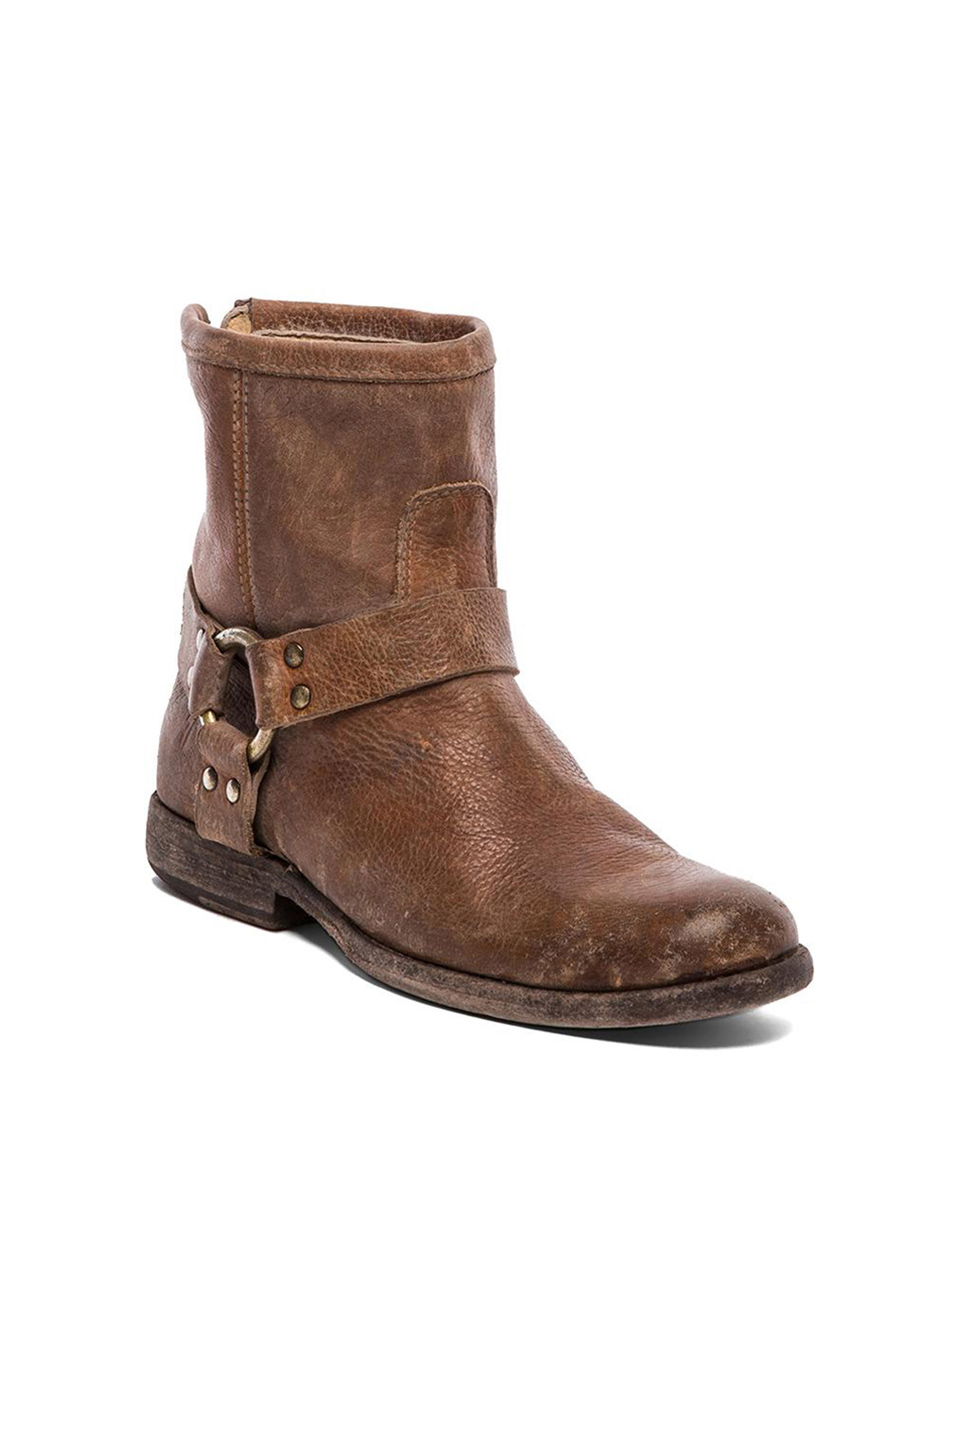 Frye Phillip Harness in Cognac